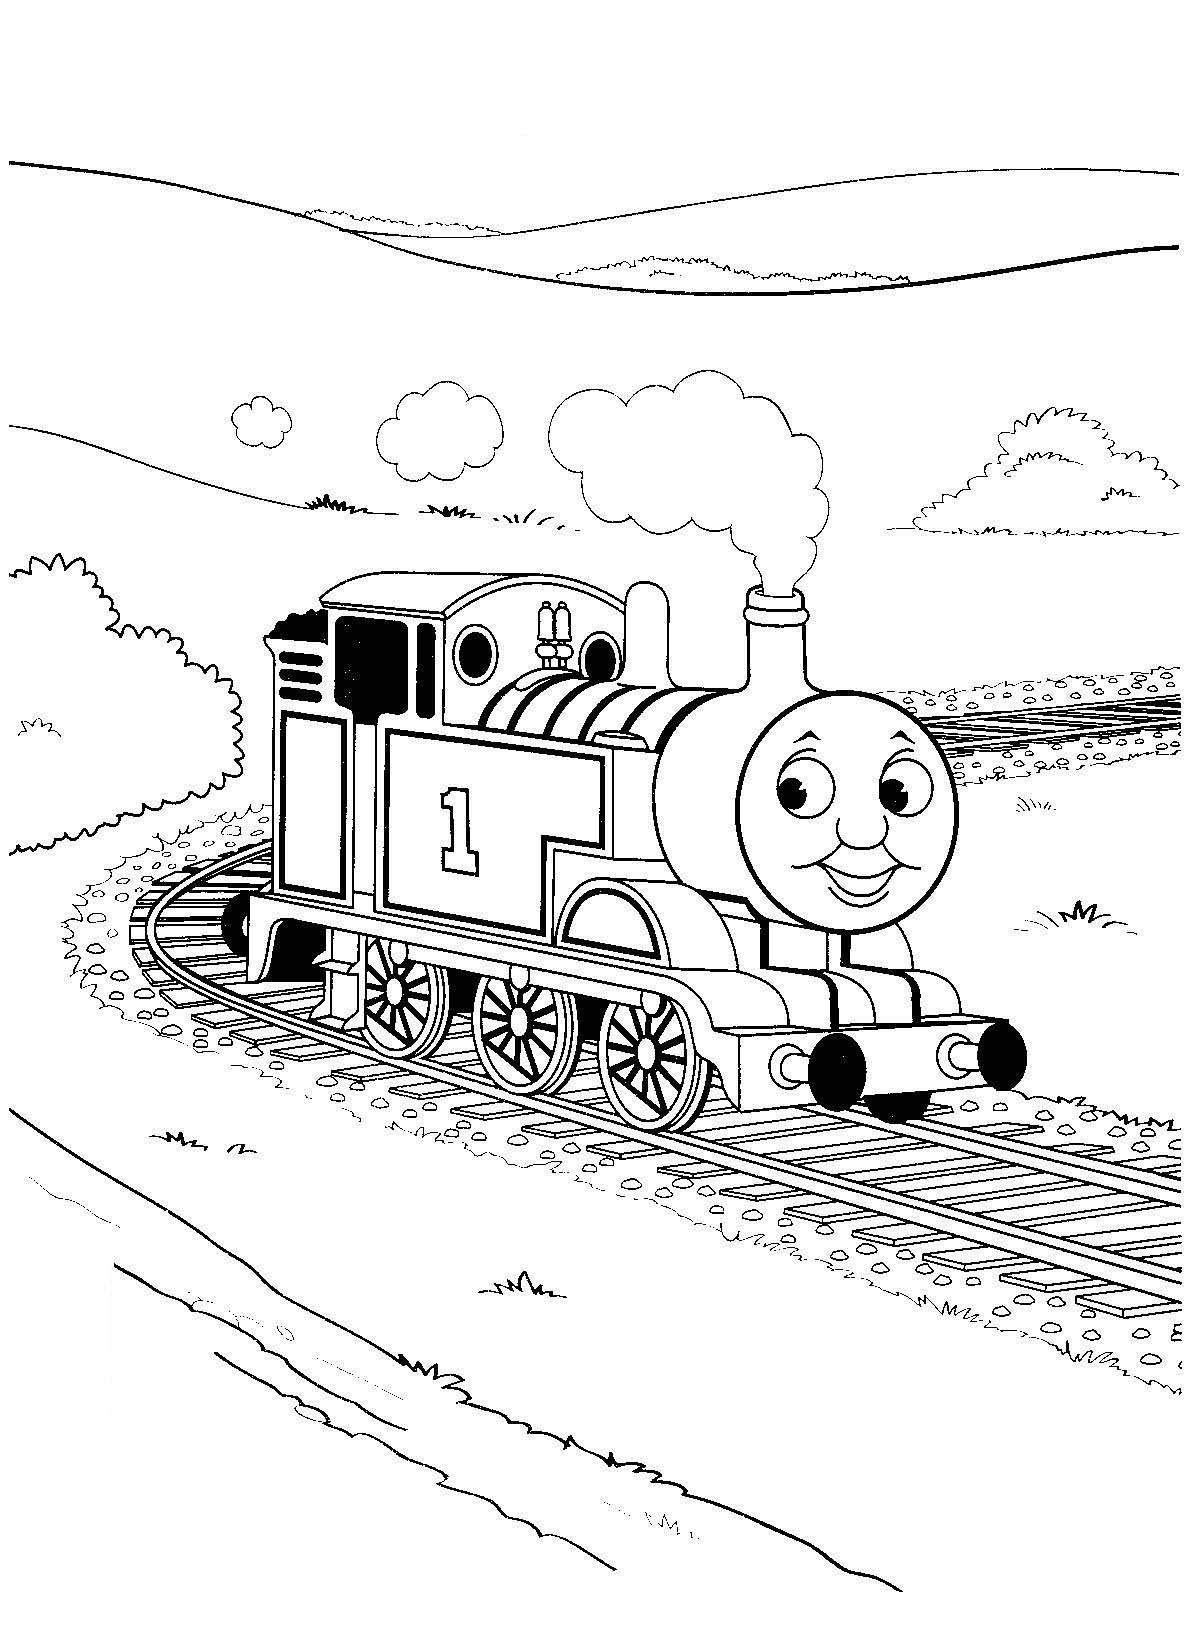 train coloring pages | Free Printable Train Coloring Pages For Kids ...